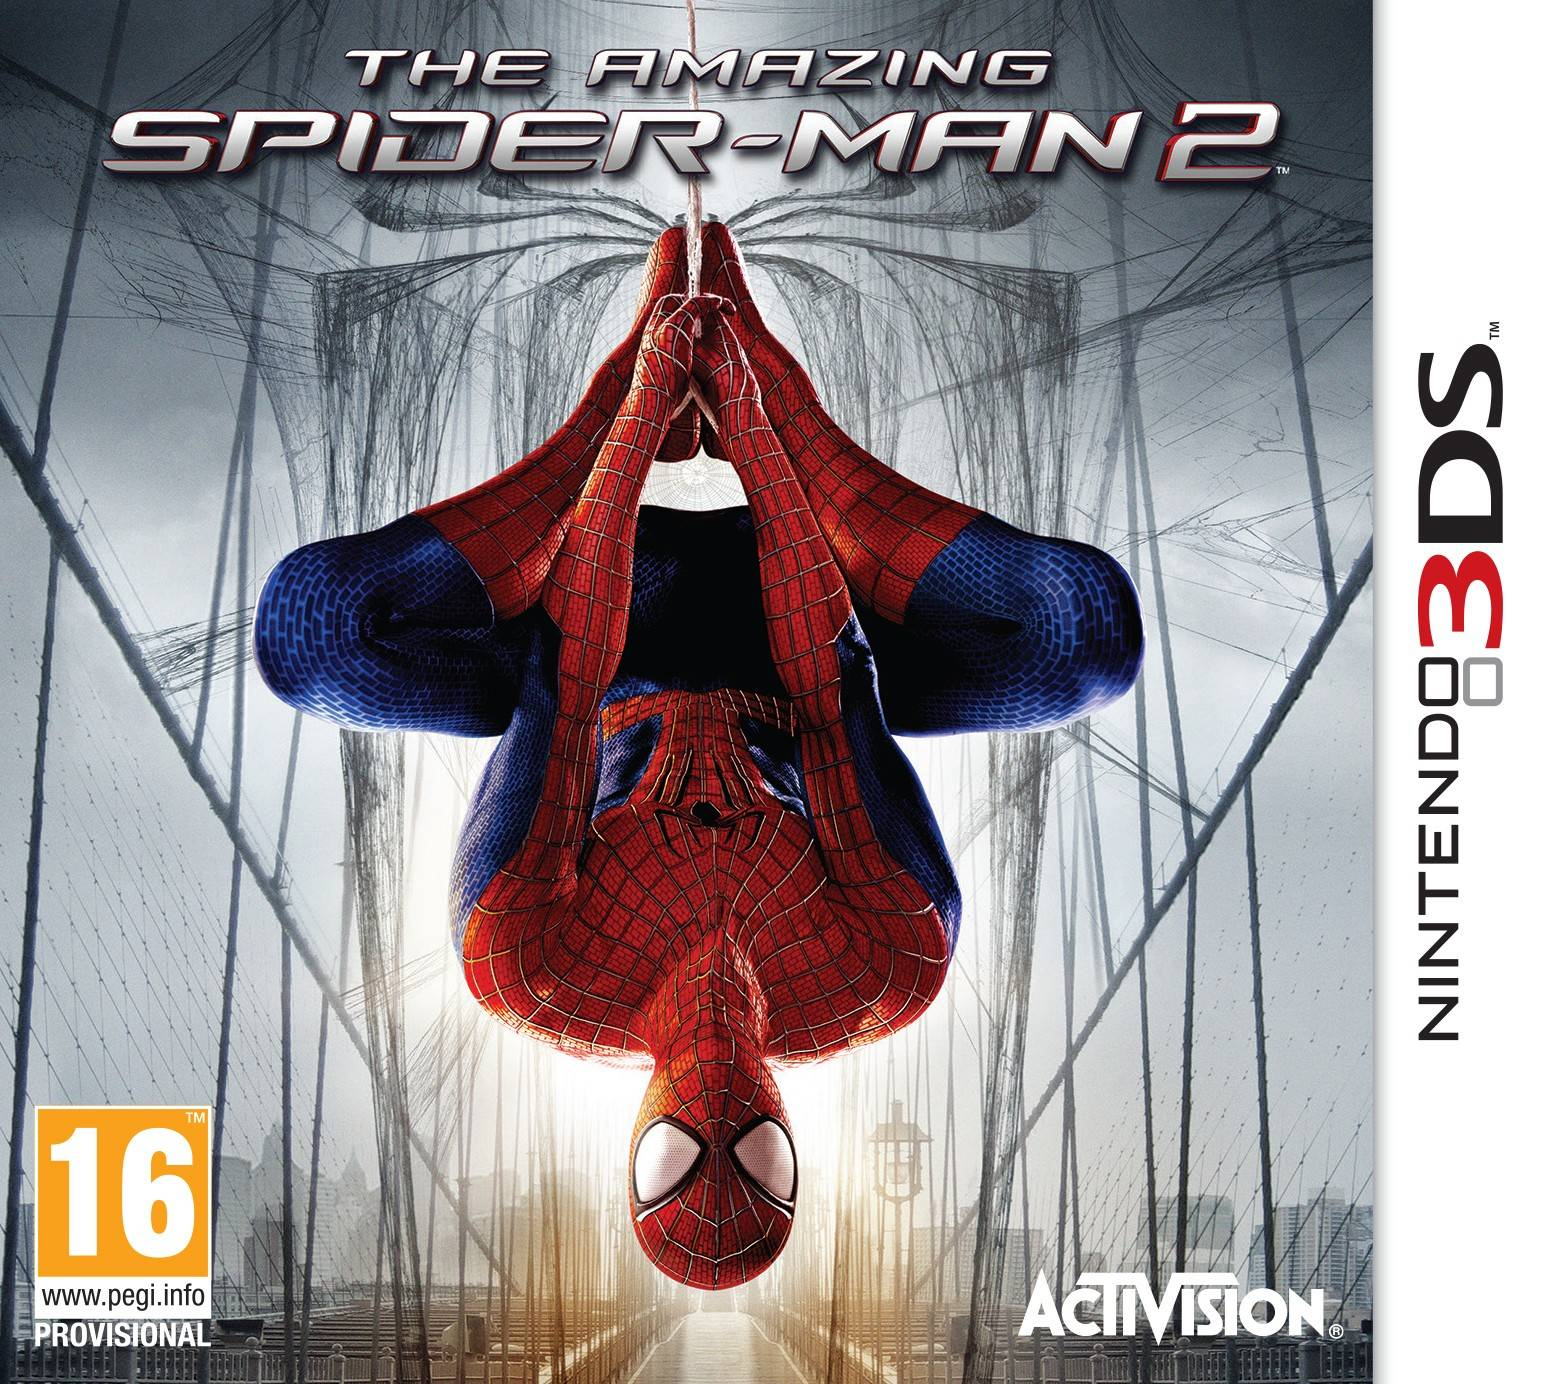 Activision The Amazing Spider-Man 2 (3DS)